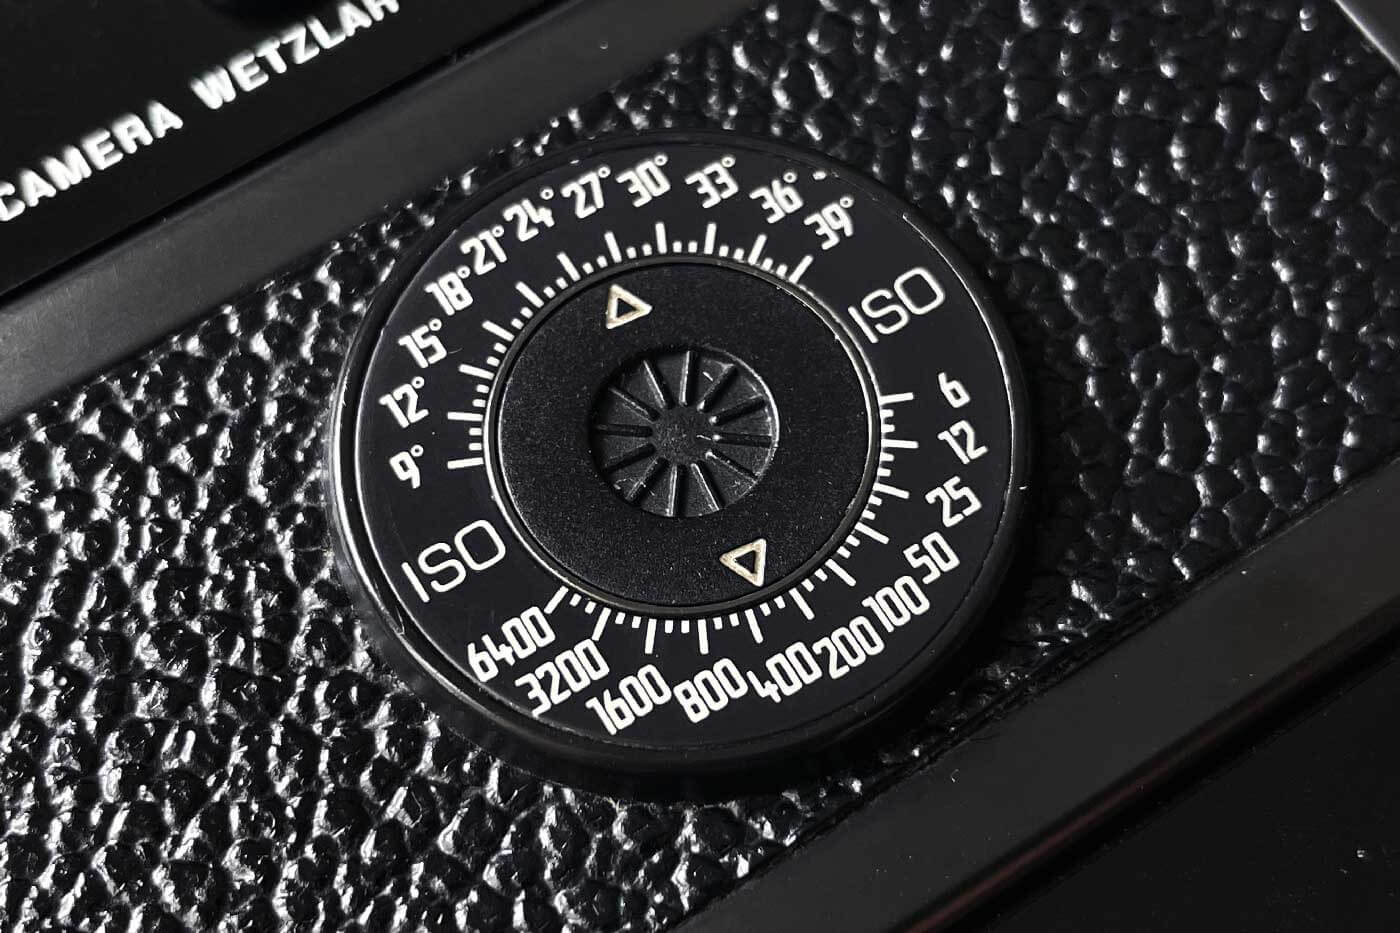 how-to-load-film-into-35mm-film-camera-135-extra-frame-properly-correct-way-best-check-beginner-tips-guide-advancing-first-frame-knob-rewind-change-iso-dial